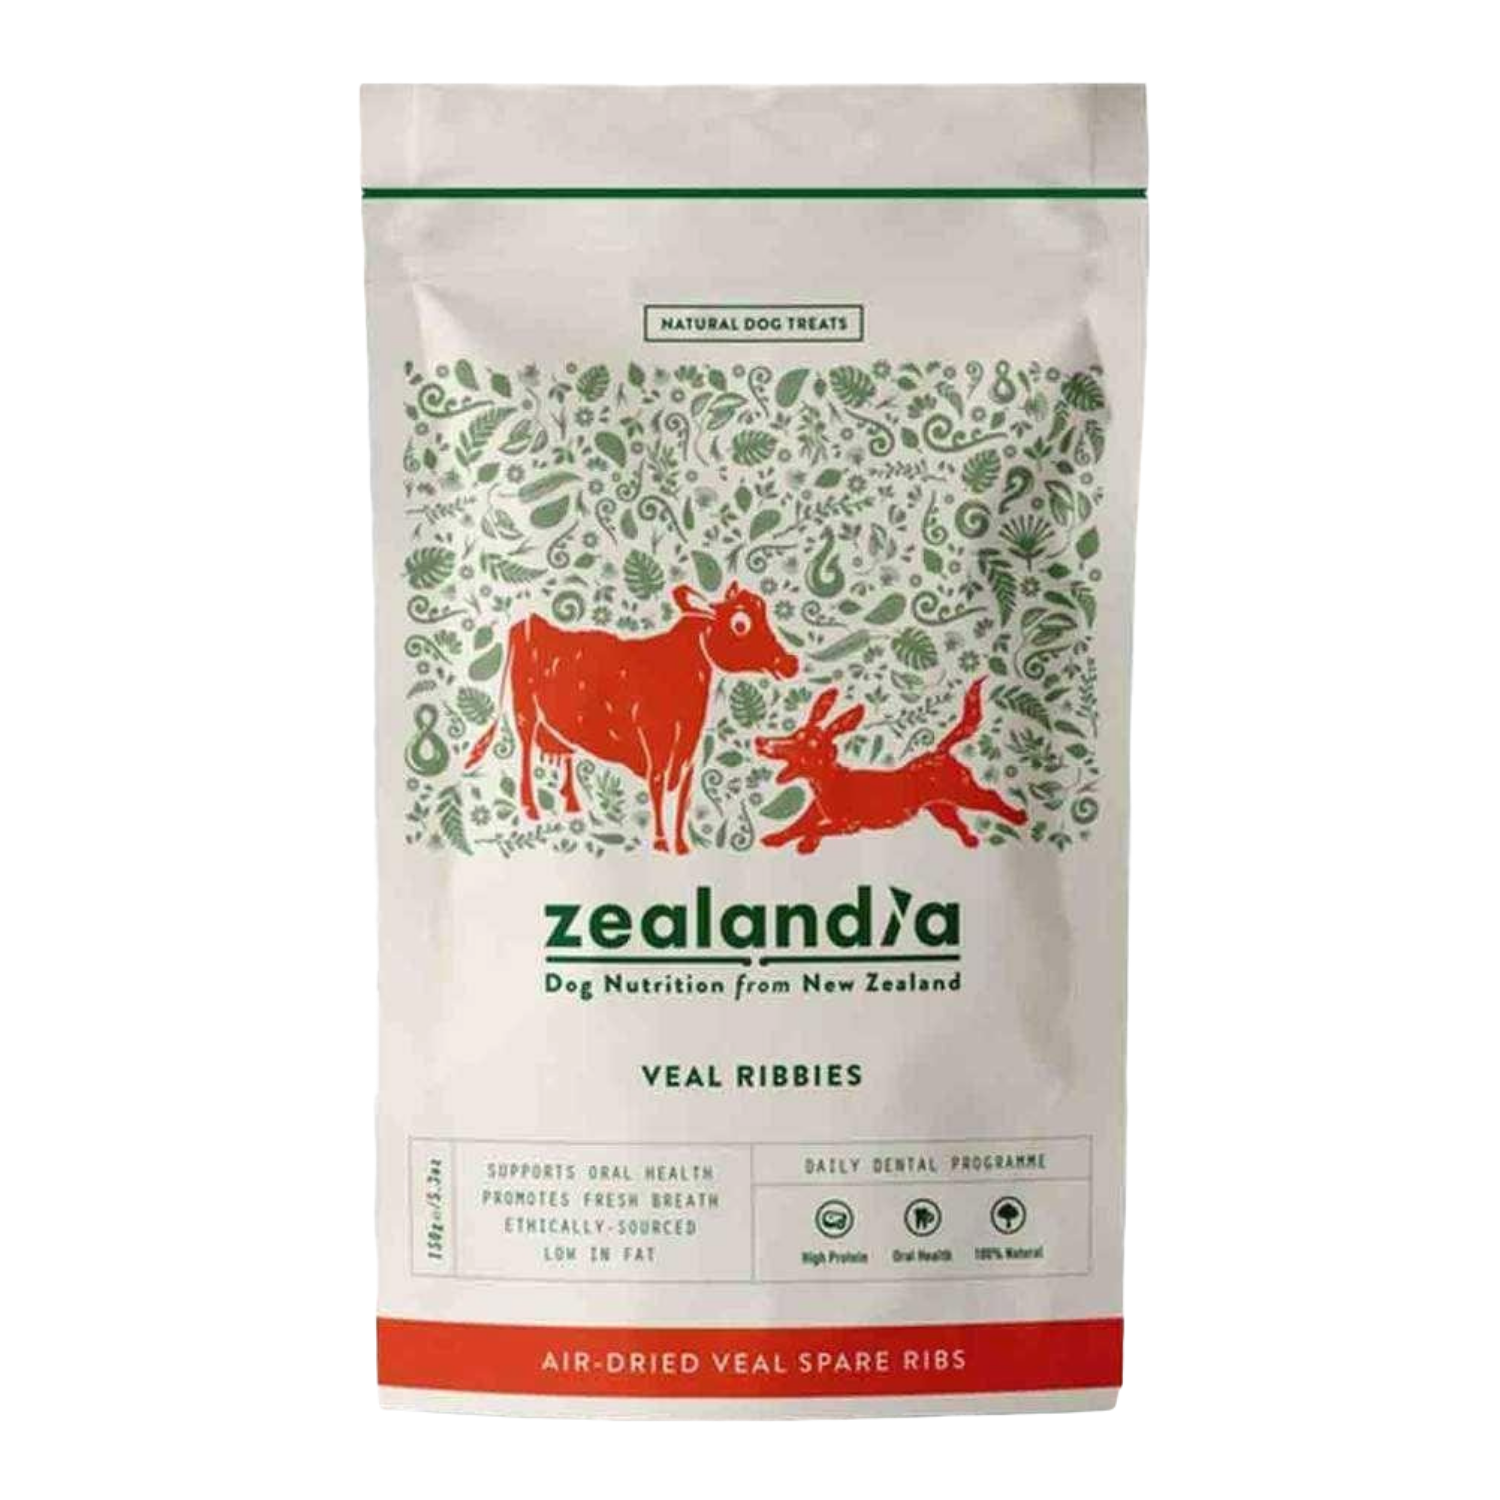 Zealandia Veal Ribbies for Dogs - 150g Pack